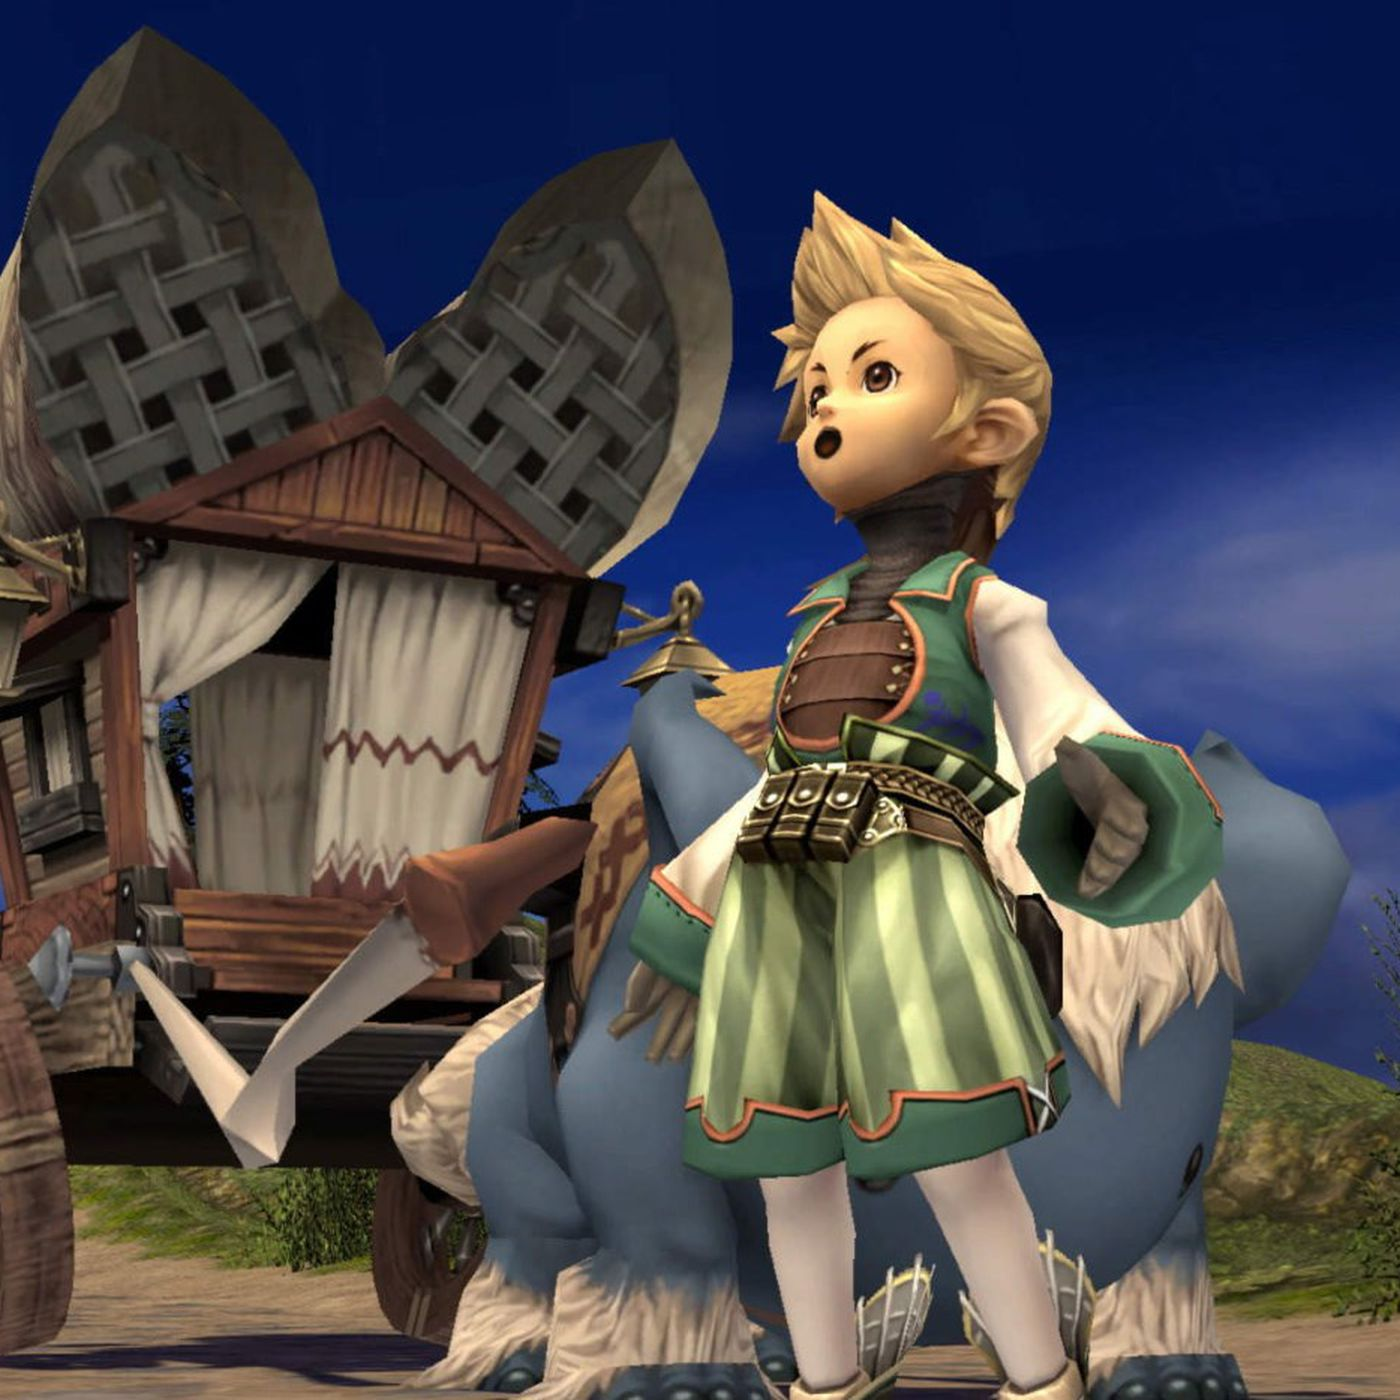 Final Fantasy Crystal Chronicles Remastered Edition Launching Jan